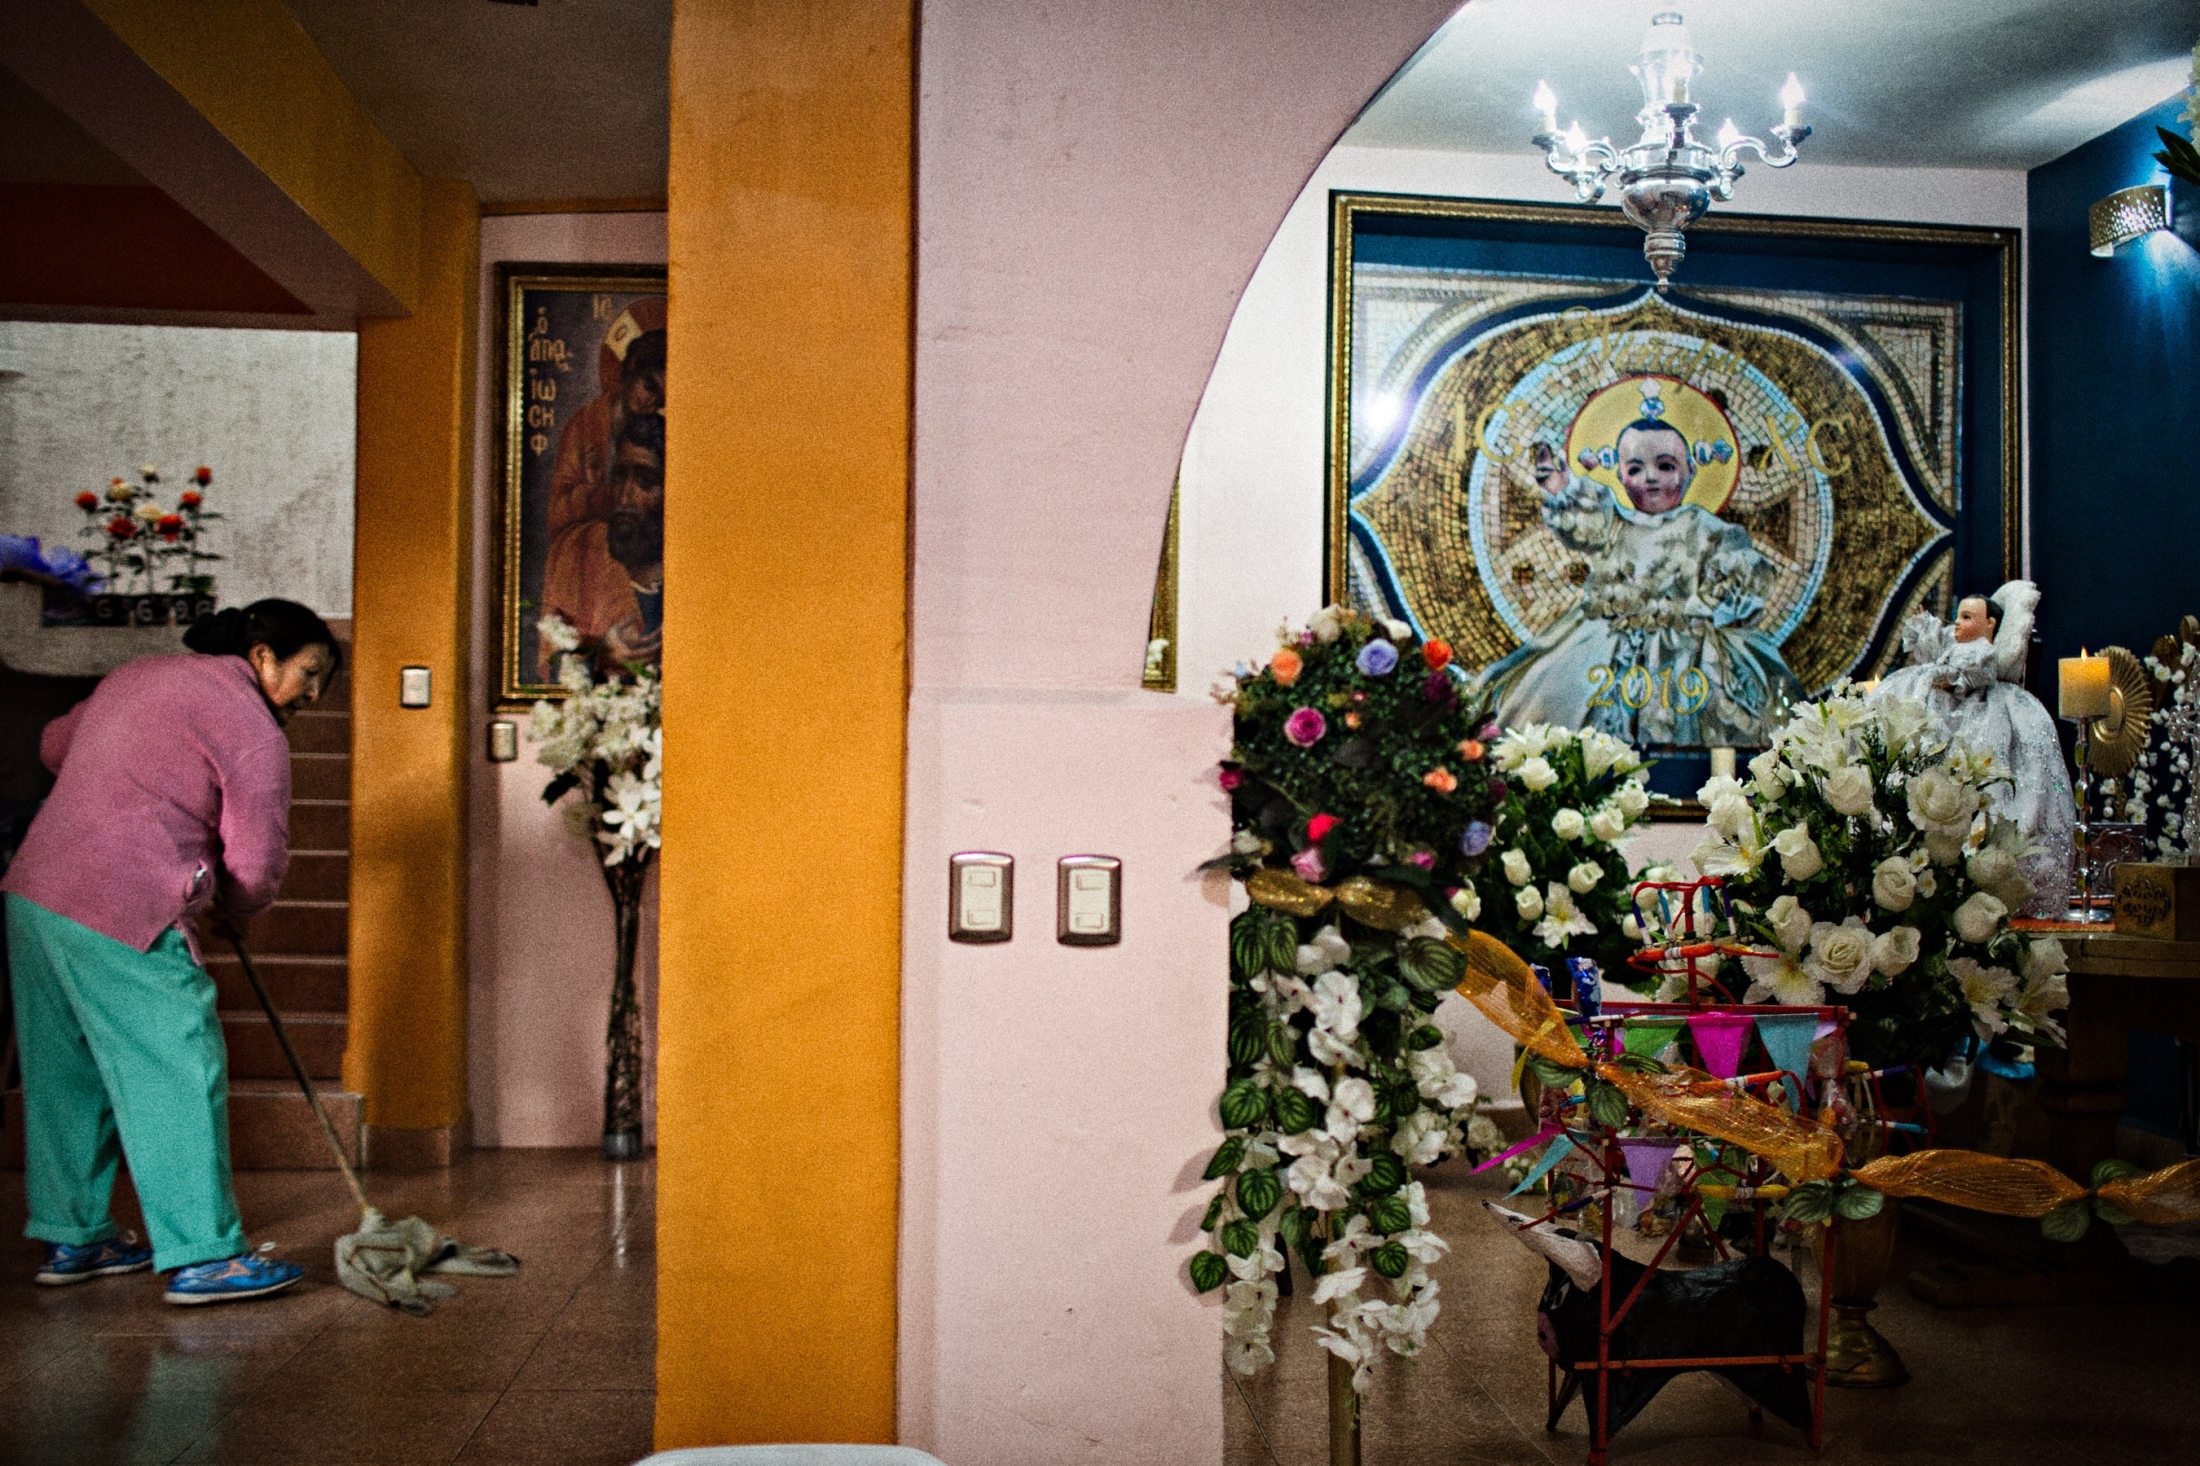 Many neighbors share in helping Niñopa's stay at the home of the Majordomo. A neighbor mops the floor before the doors are opened for the worshipers to arrive.